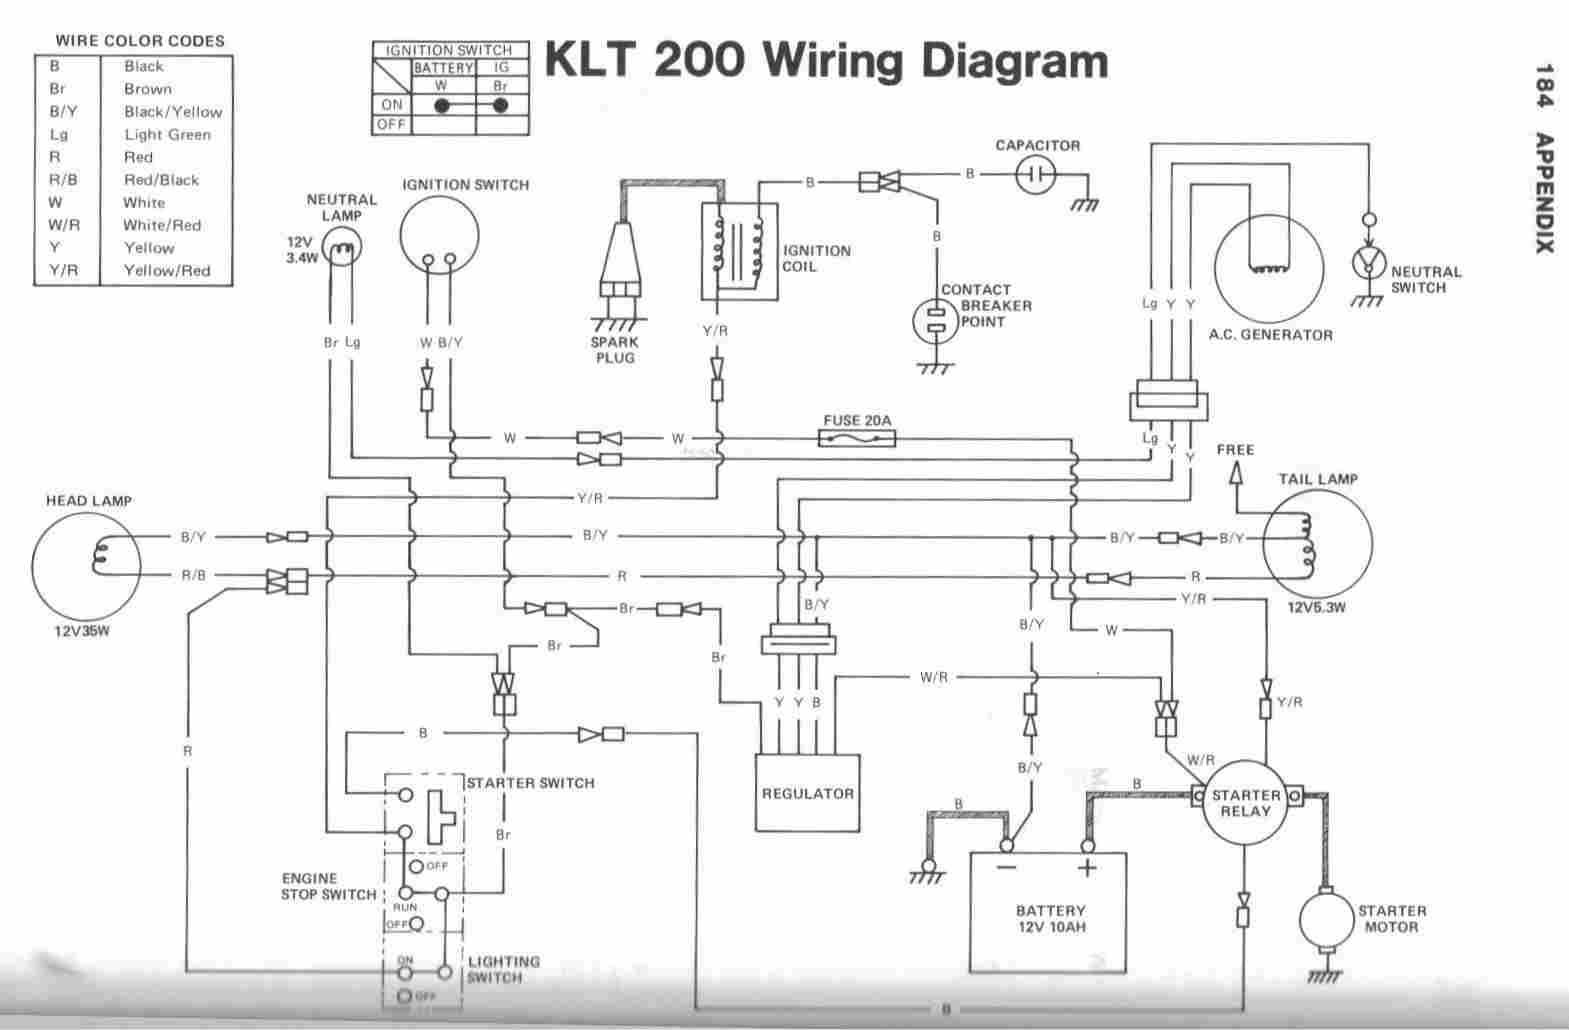 Electric Geyser Wiring Diagram Toyota Corolla Diagrams Residential Electrical Pdf Easy Routing